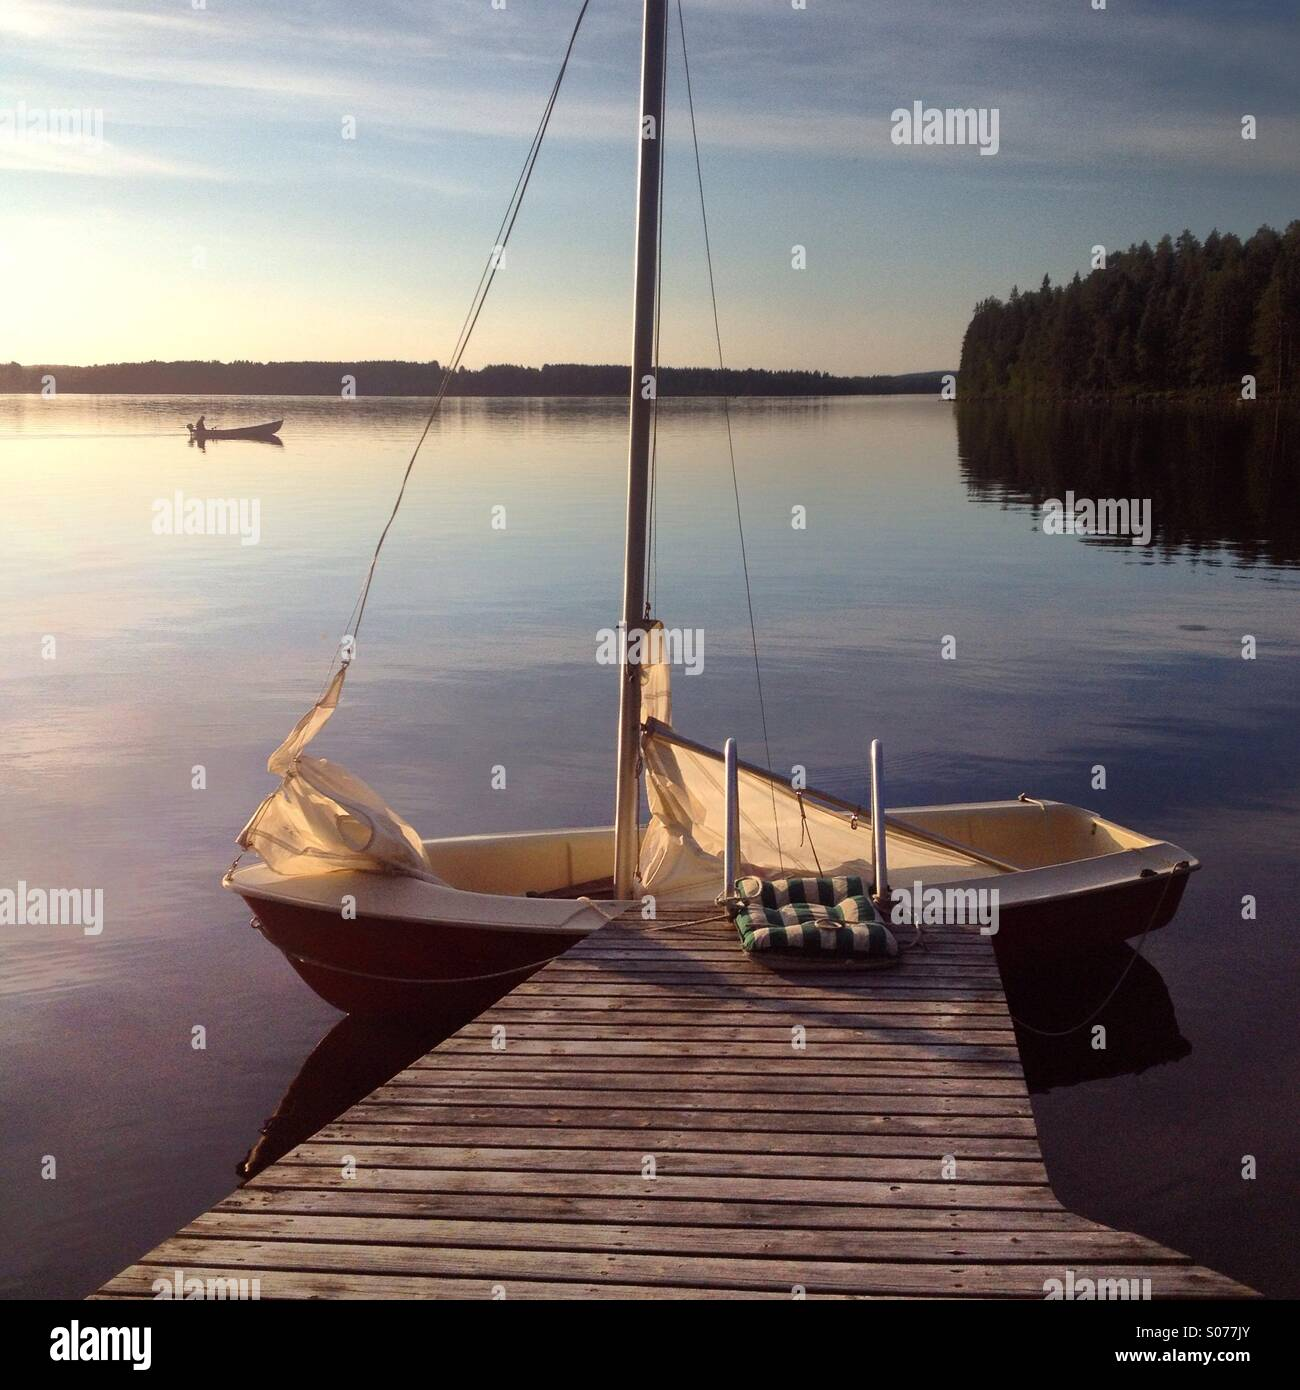 A sailing boat and a fishing boat on an idyllic Nordic lake in the north of Finland - Stock Image